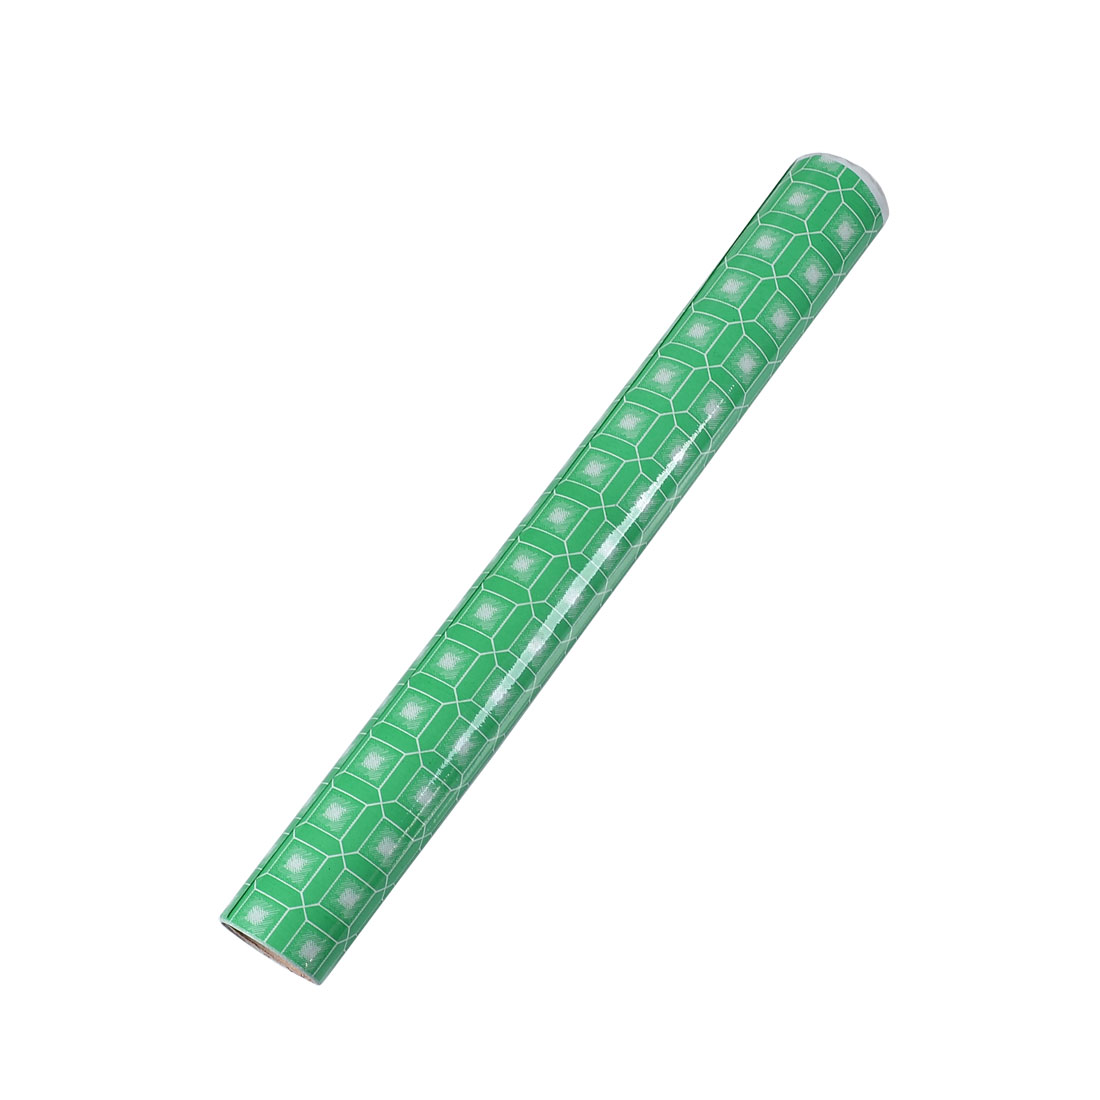 45cm x 1.8m Green White Octagon Square Pattern Adhesive Glass Film Roll